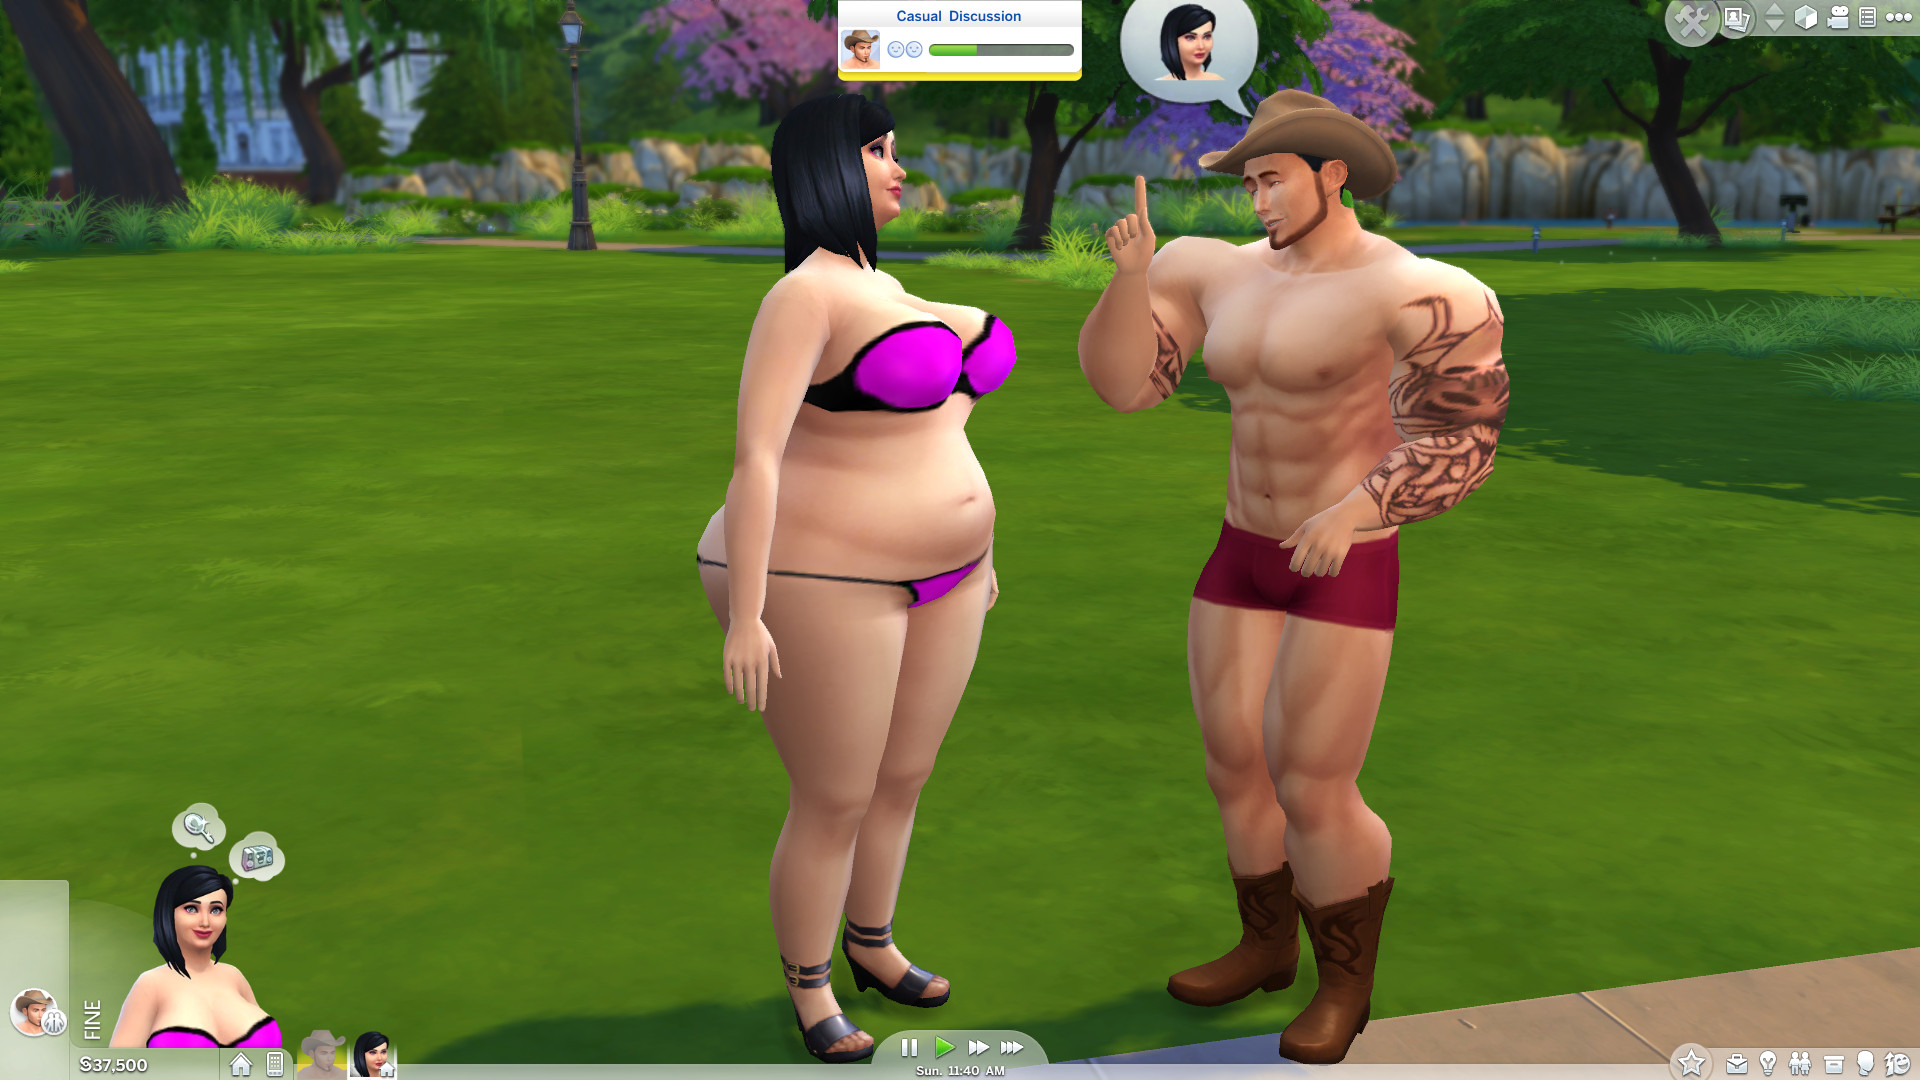 Sims 3 game nude mod ps3 download pornos picture